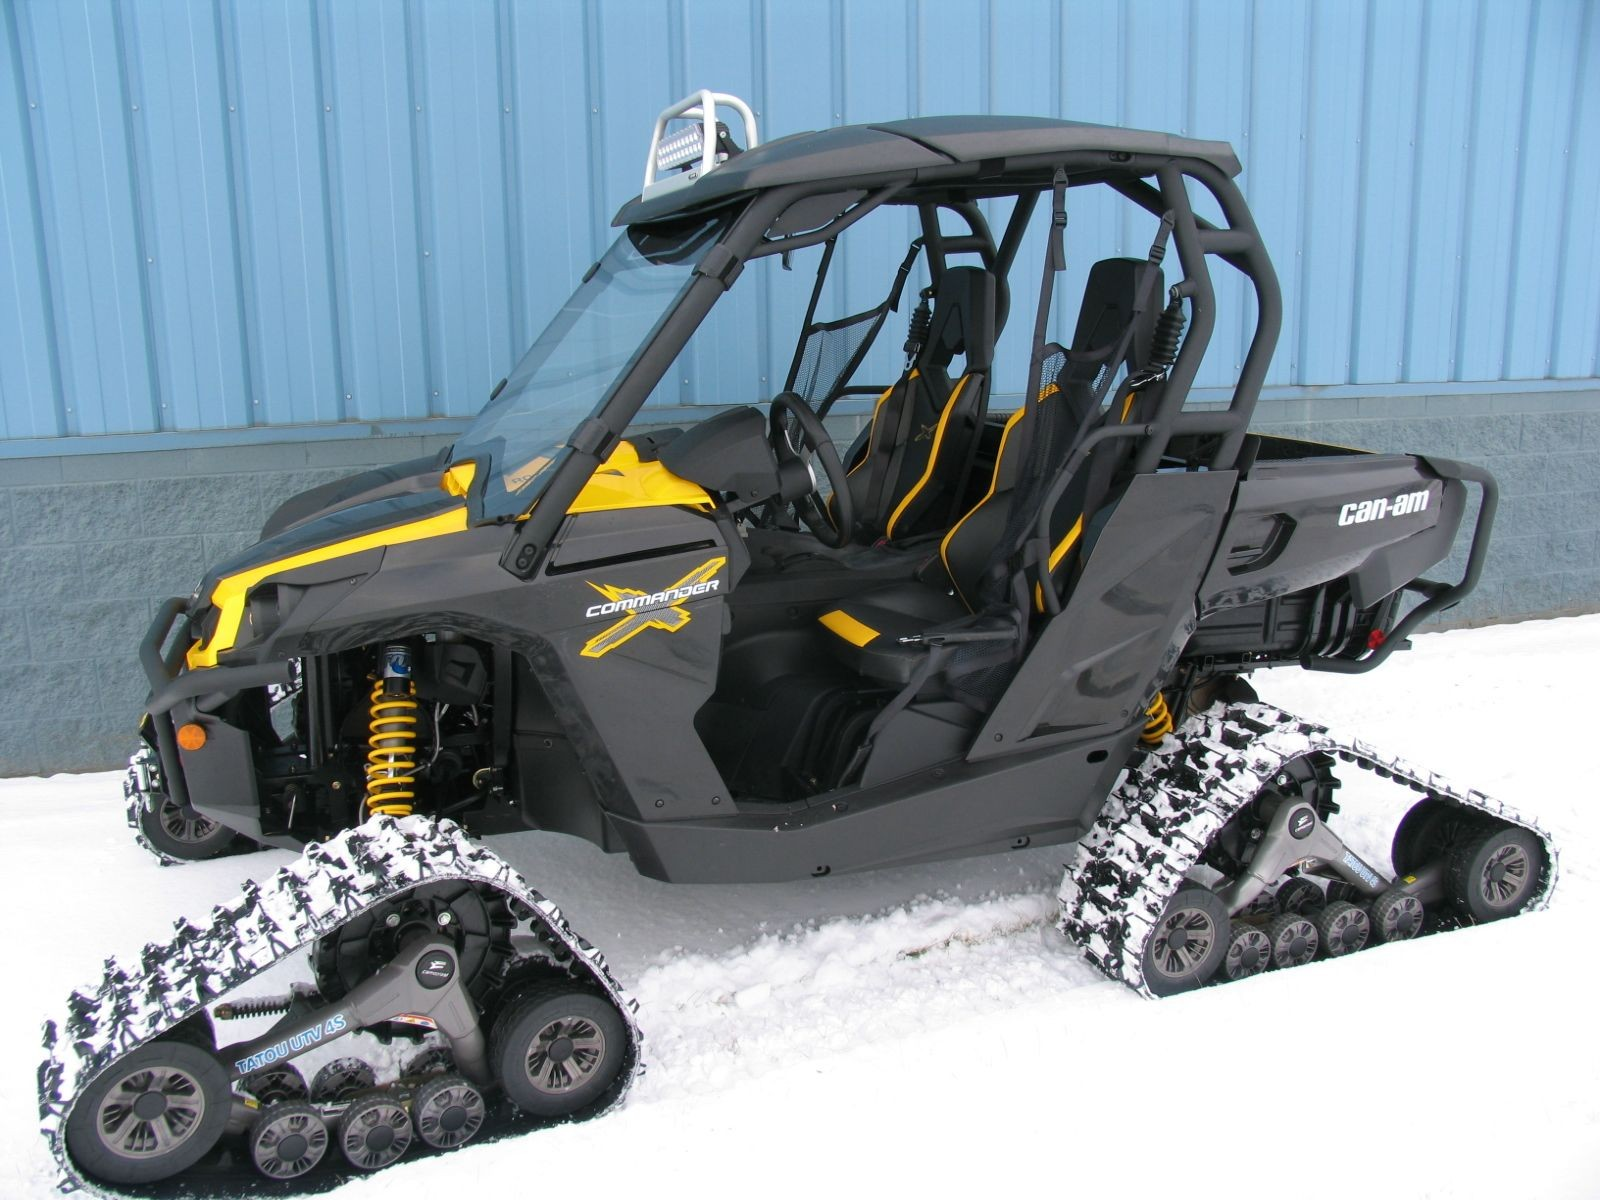 The Ultimate Can Am mander 1000X